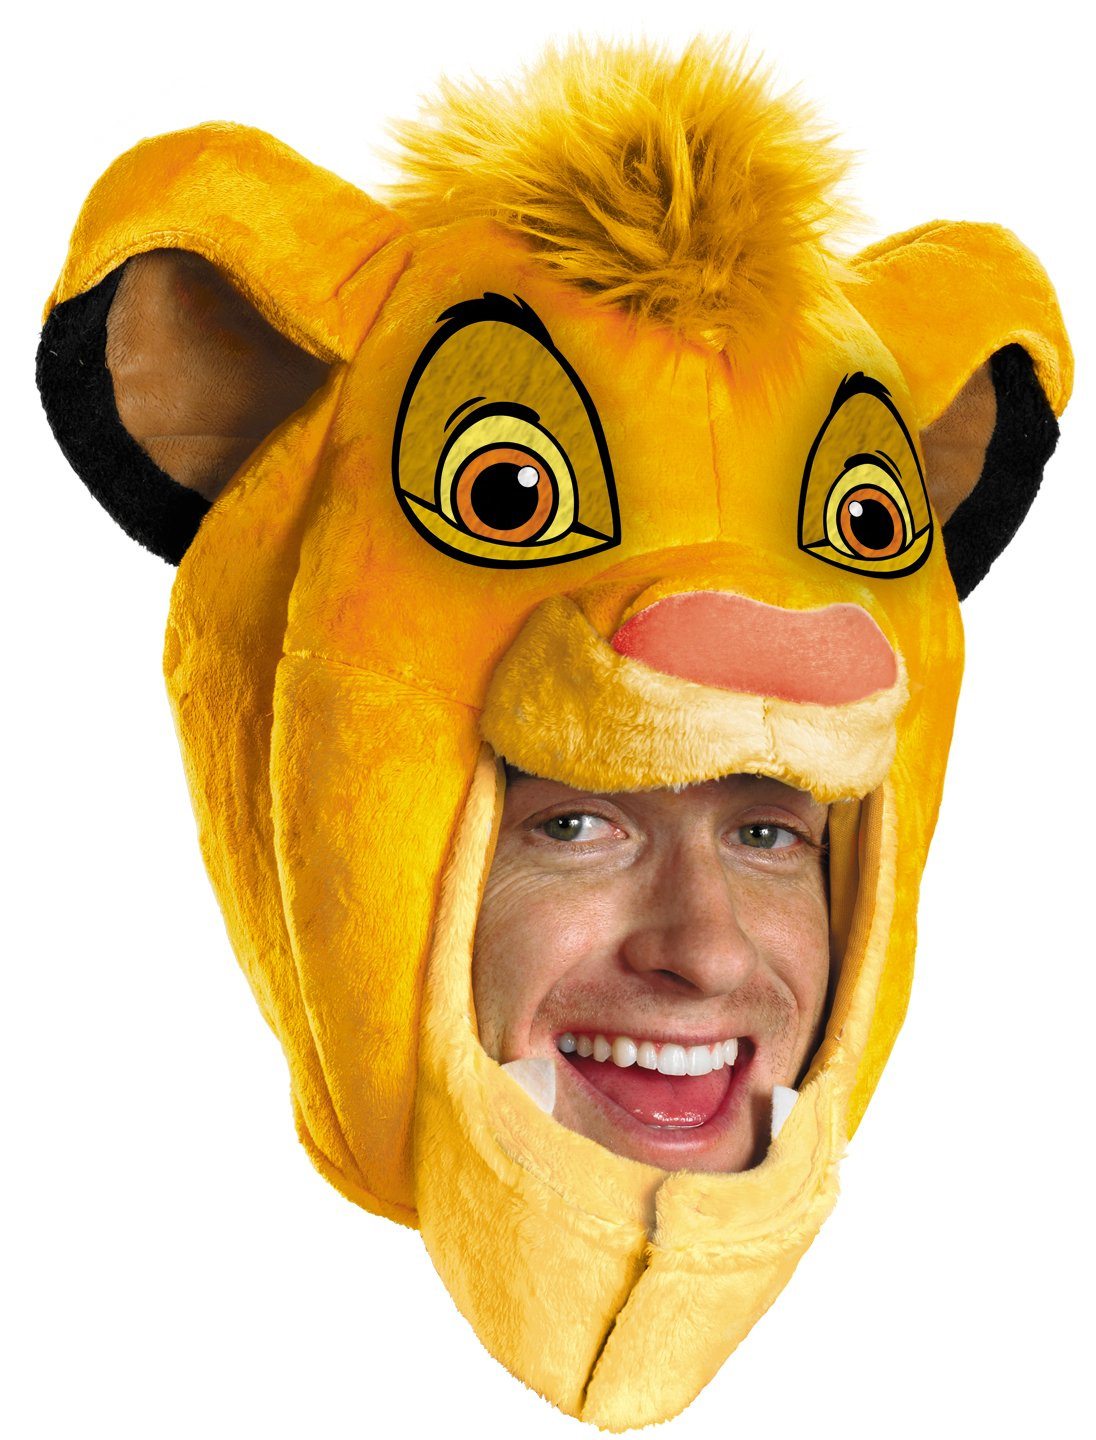 The Lion King - Simba Headpiece (Adult)